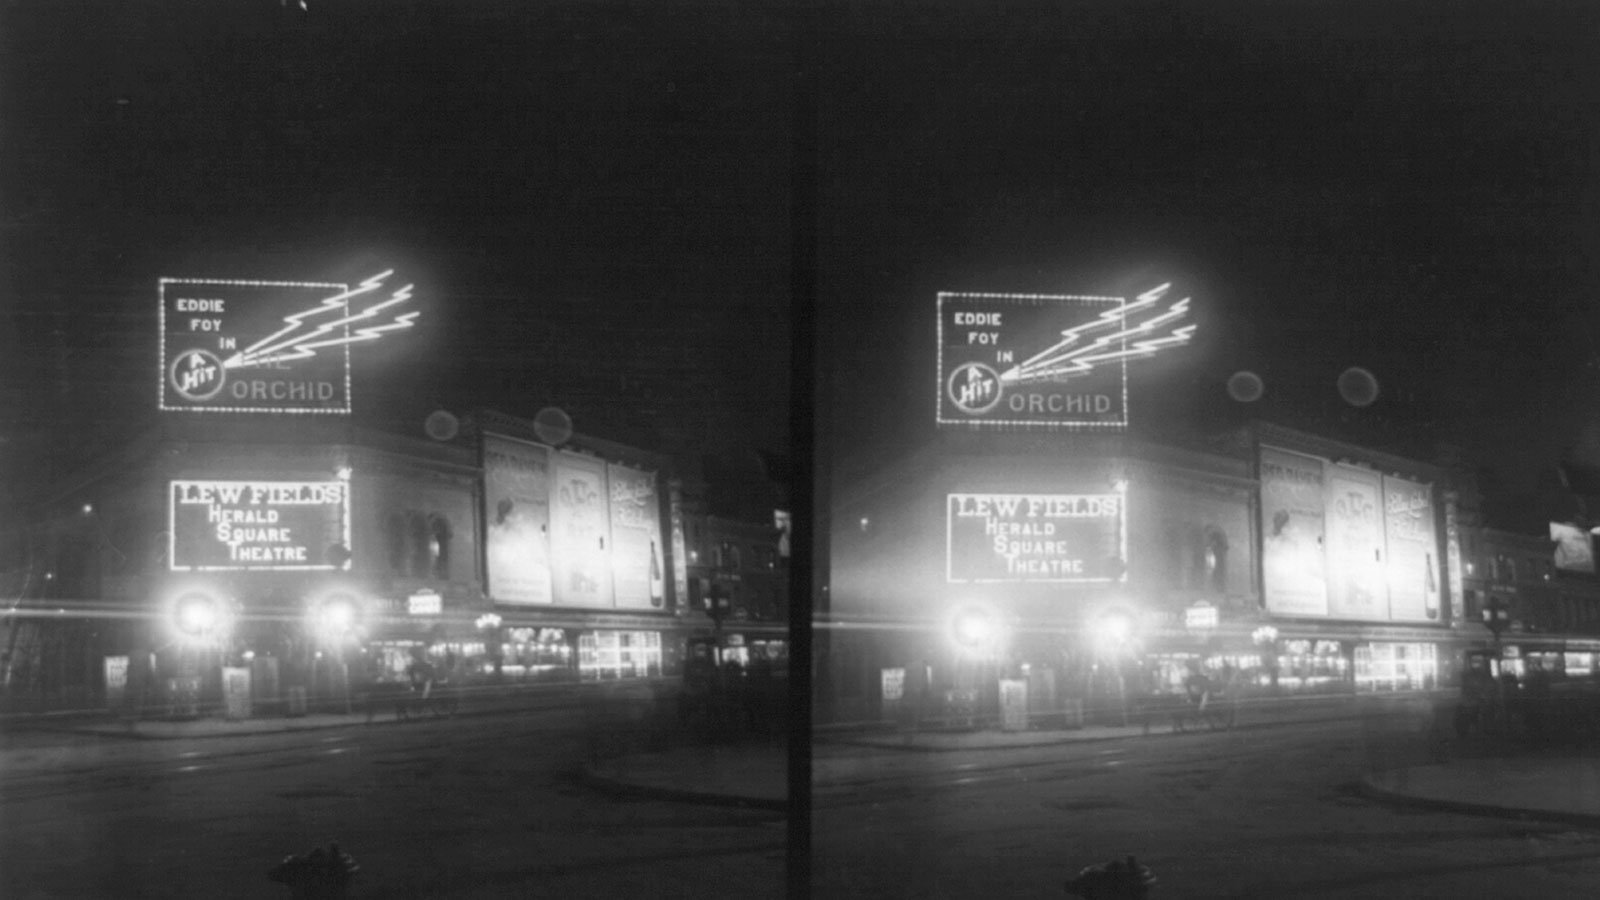 Broadway and Herald Square Theatre at night, circa 1907